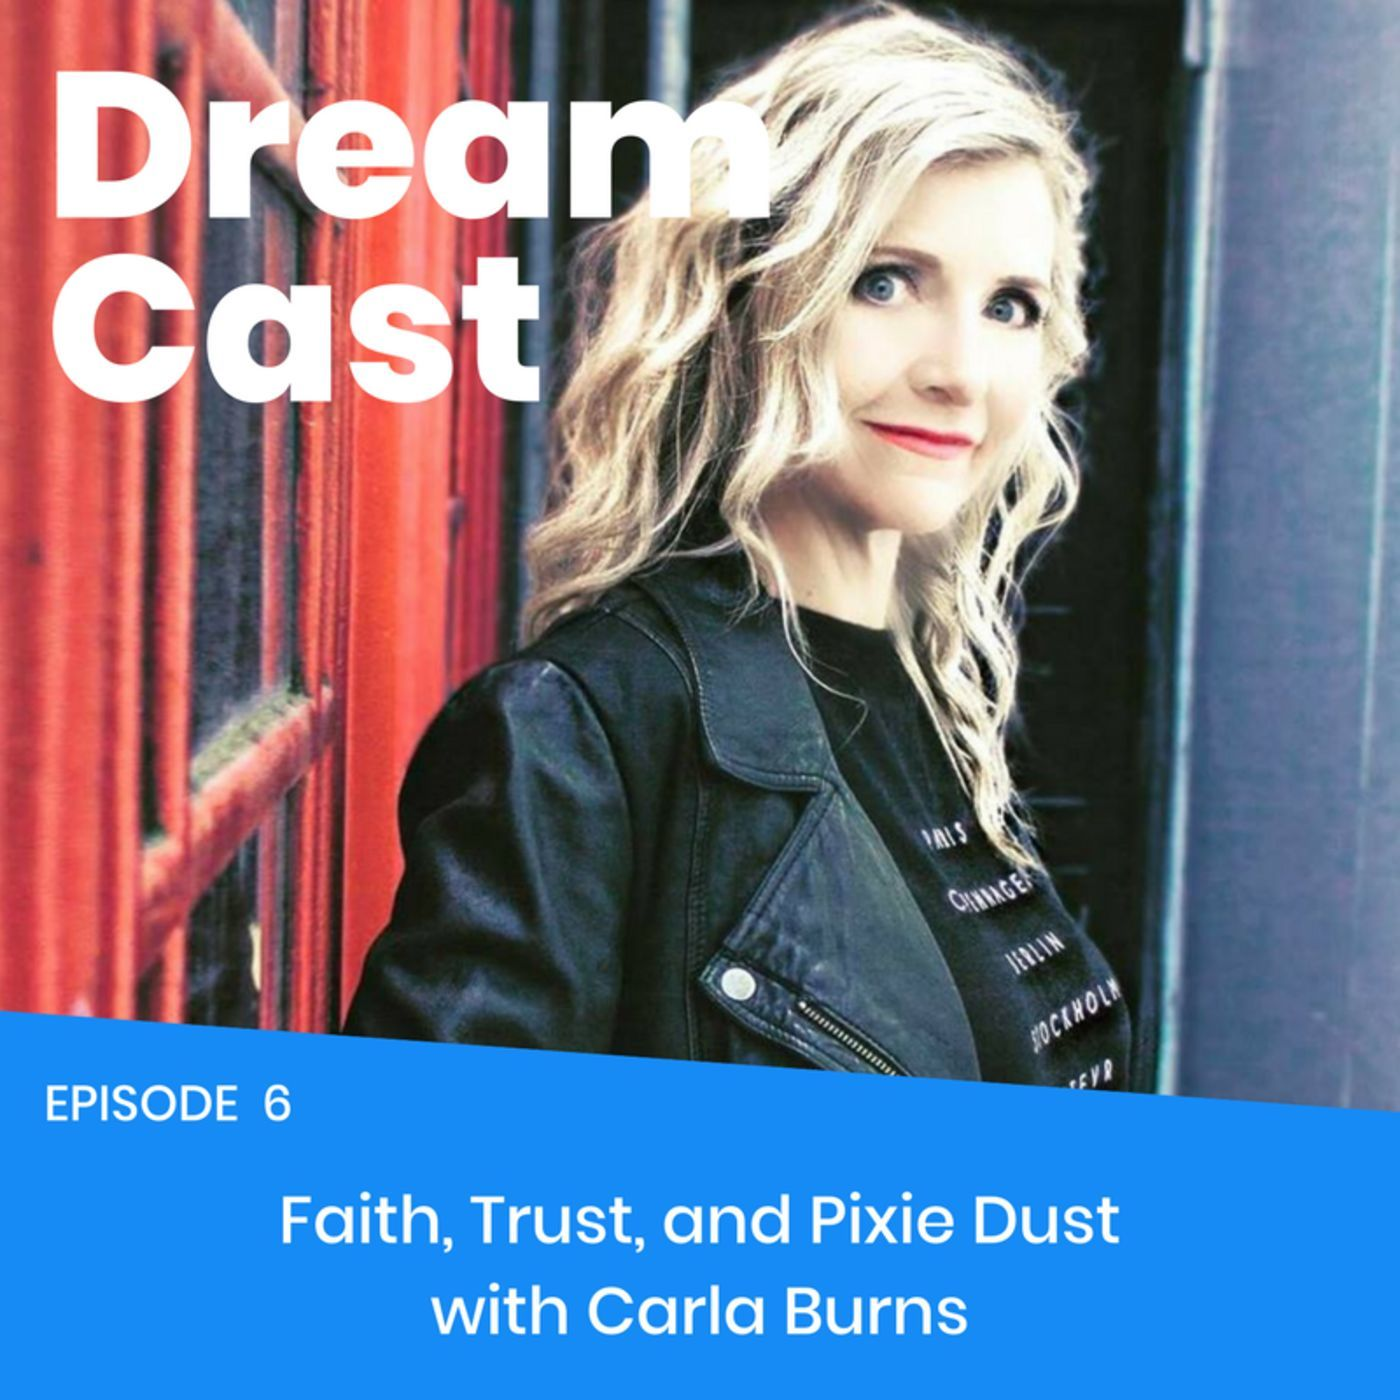 Episode 006 - Faith, Trust, and Pixie Dust with Carla Burns